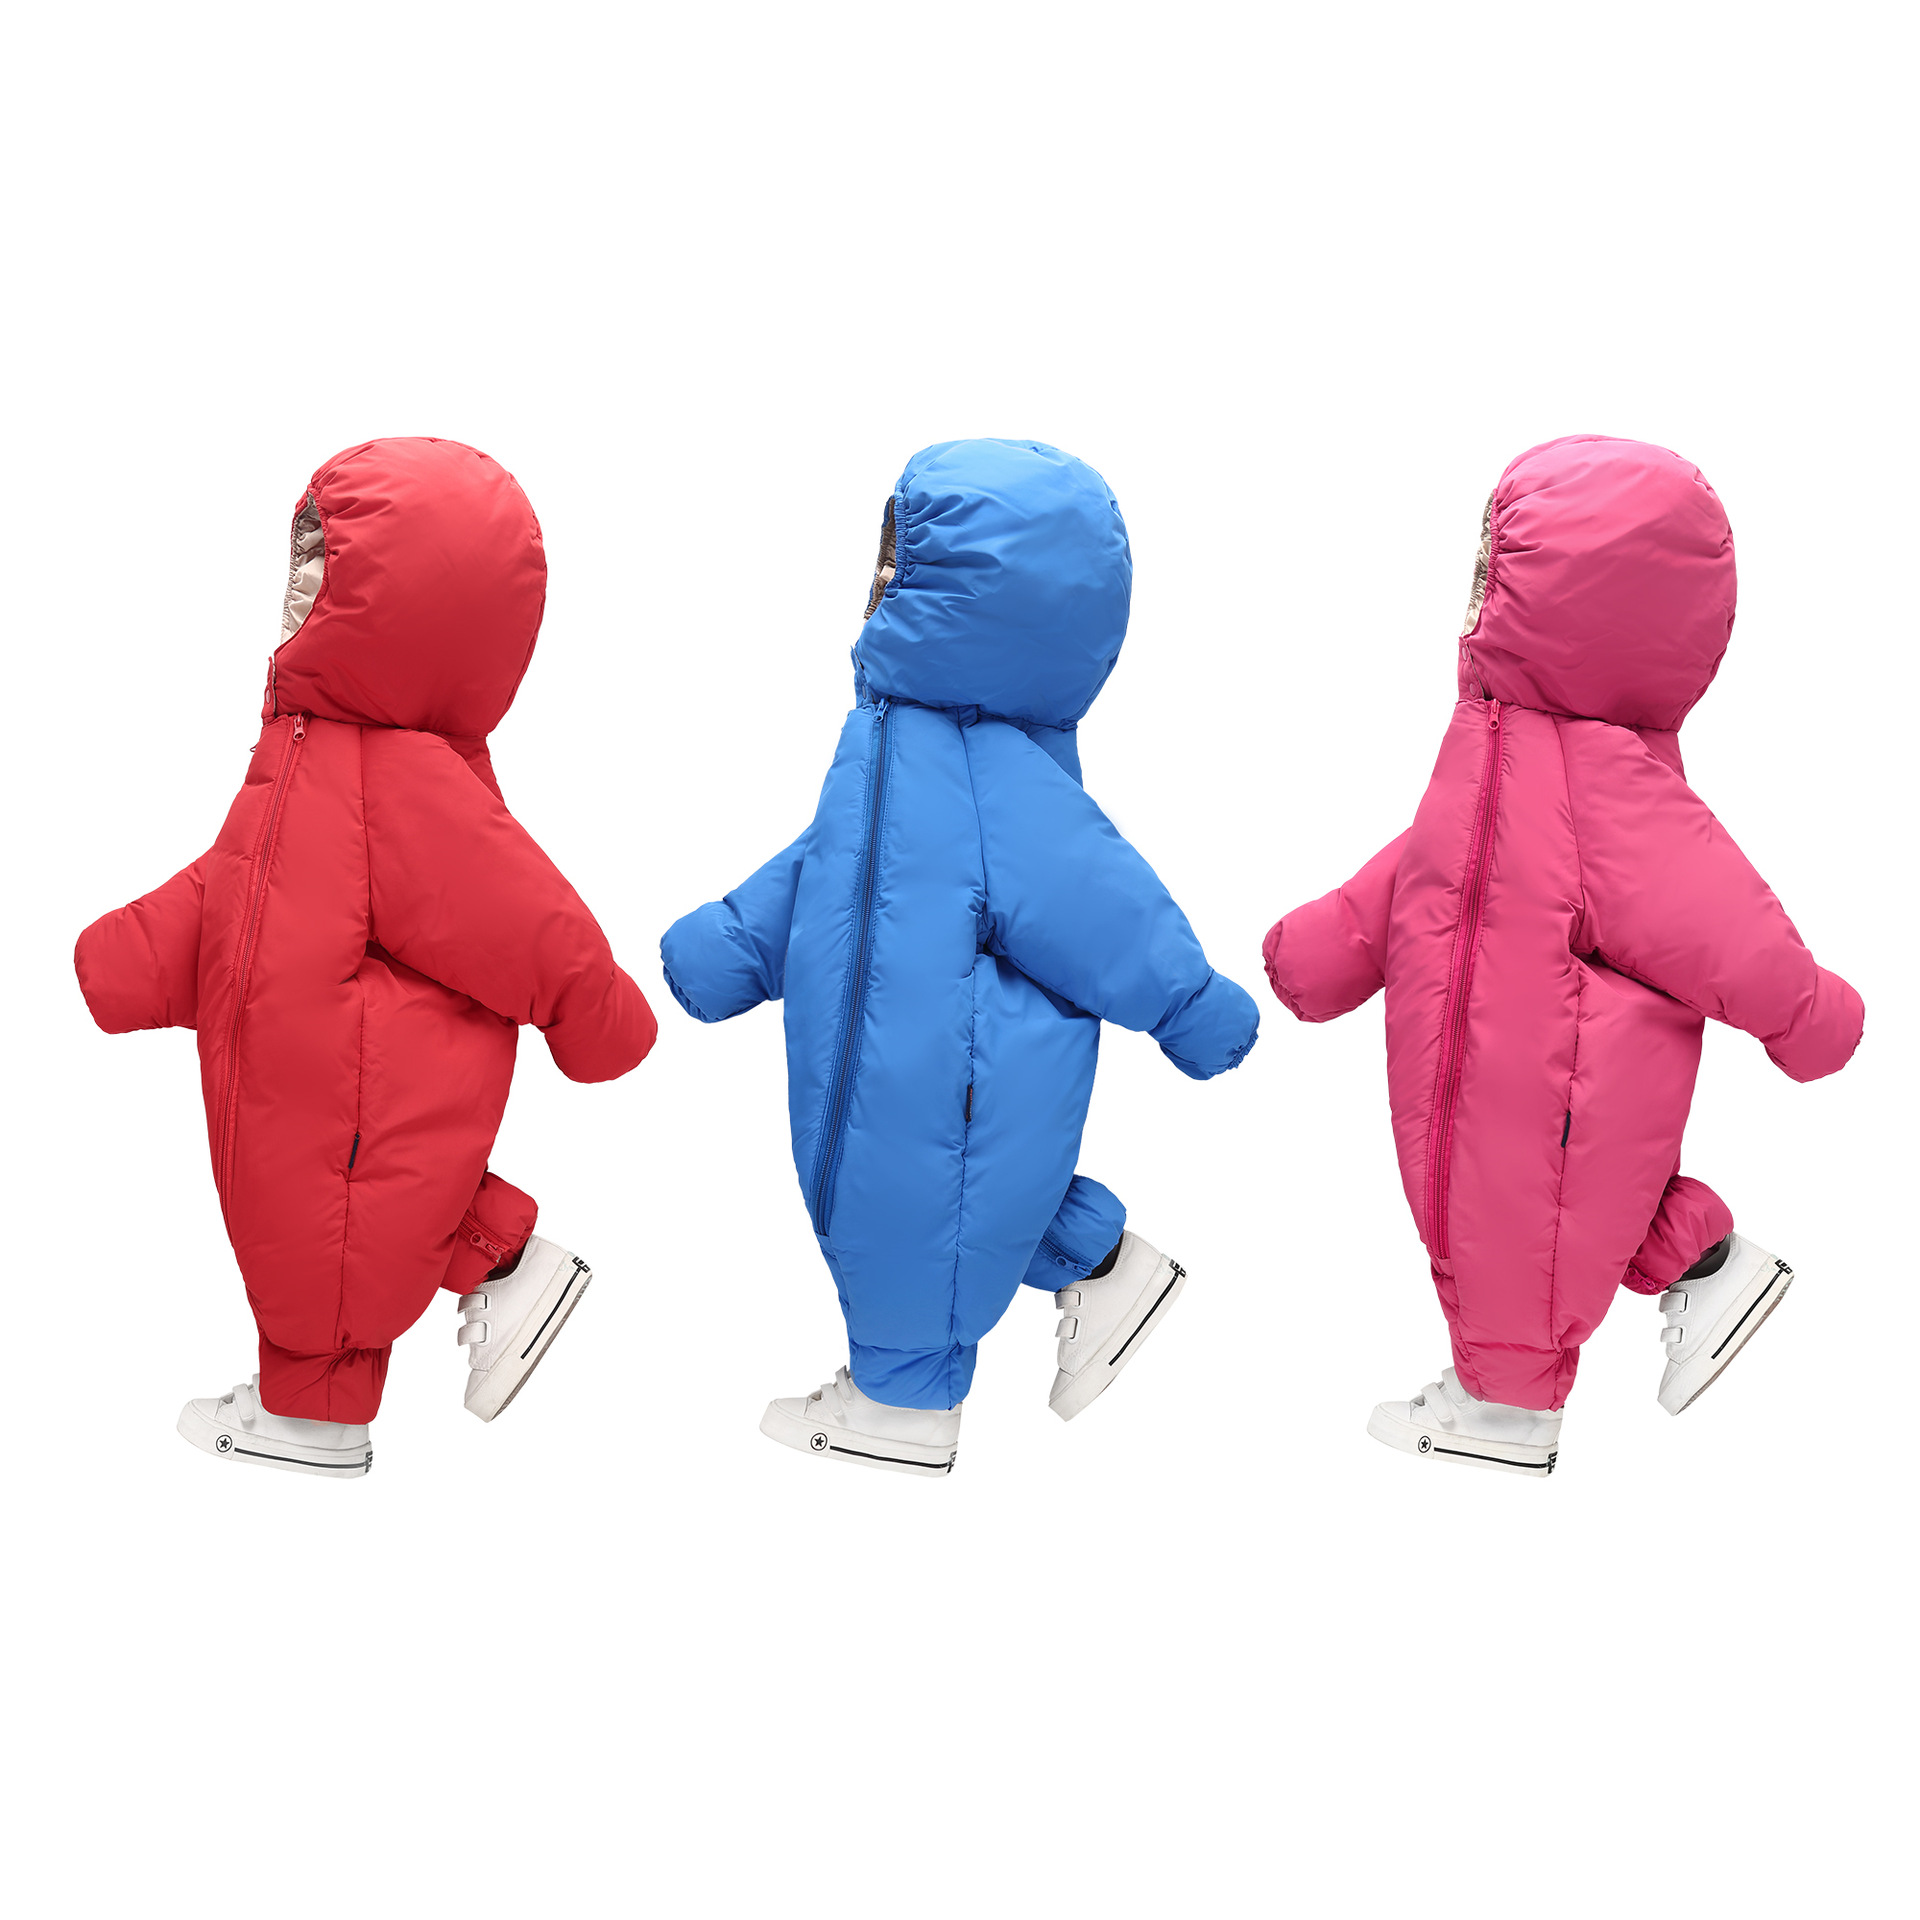 2017 new baby jumpsuit autumn winter snowsuit jacket kids overcoat Park baby girl clothing outdoor warm coat with hat for boys<br>